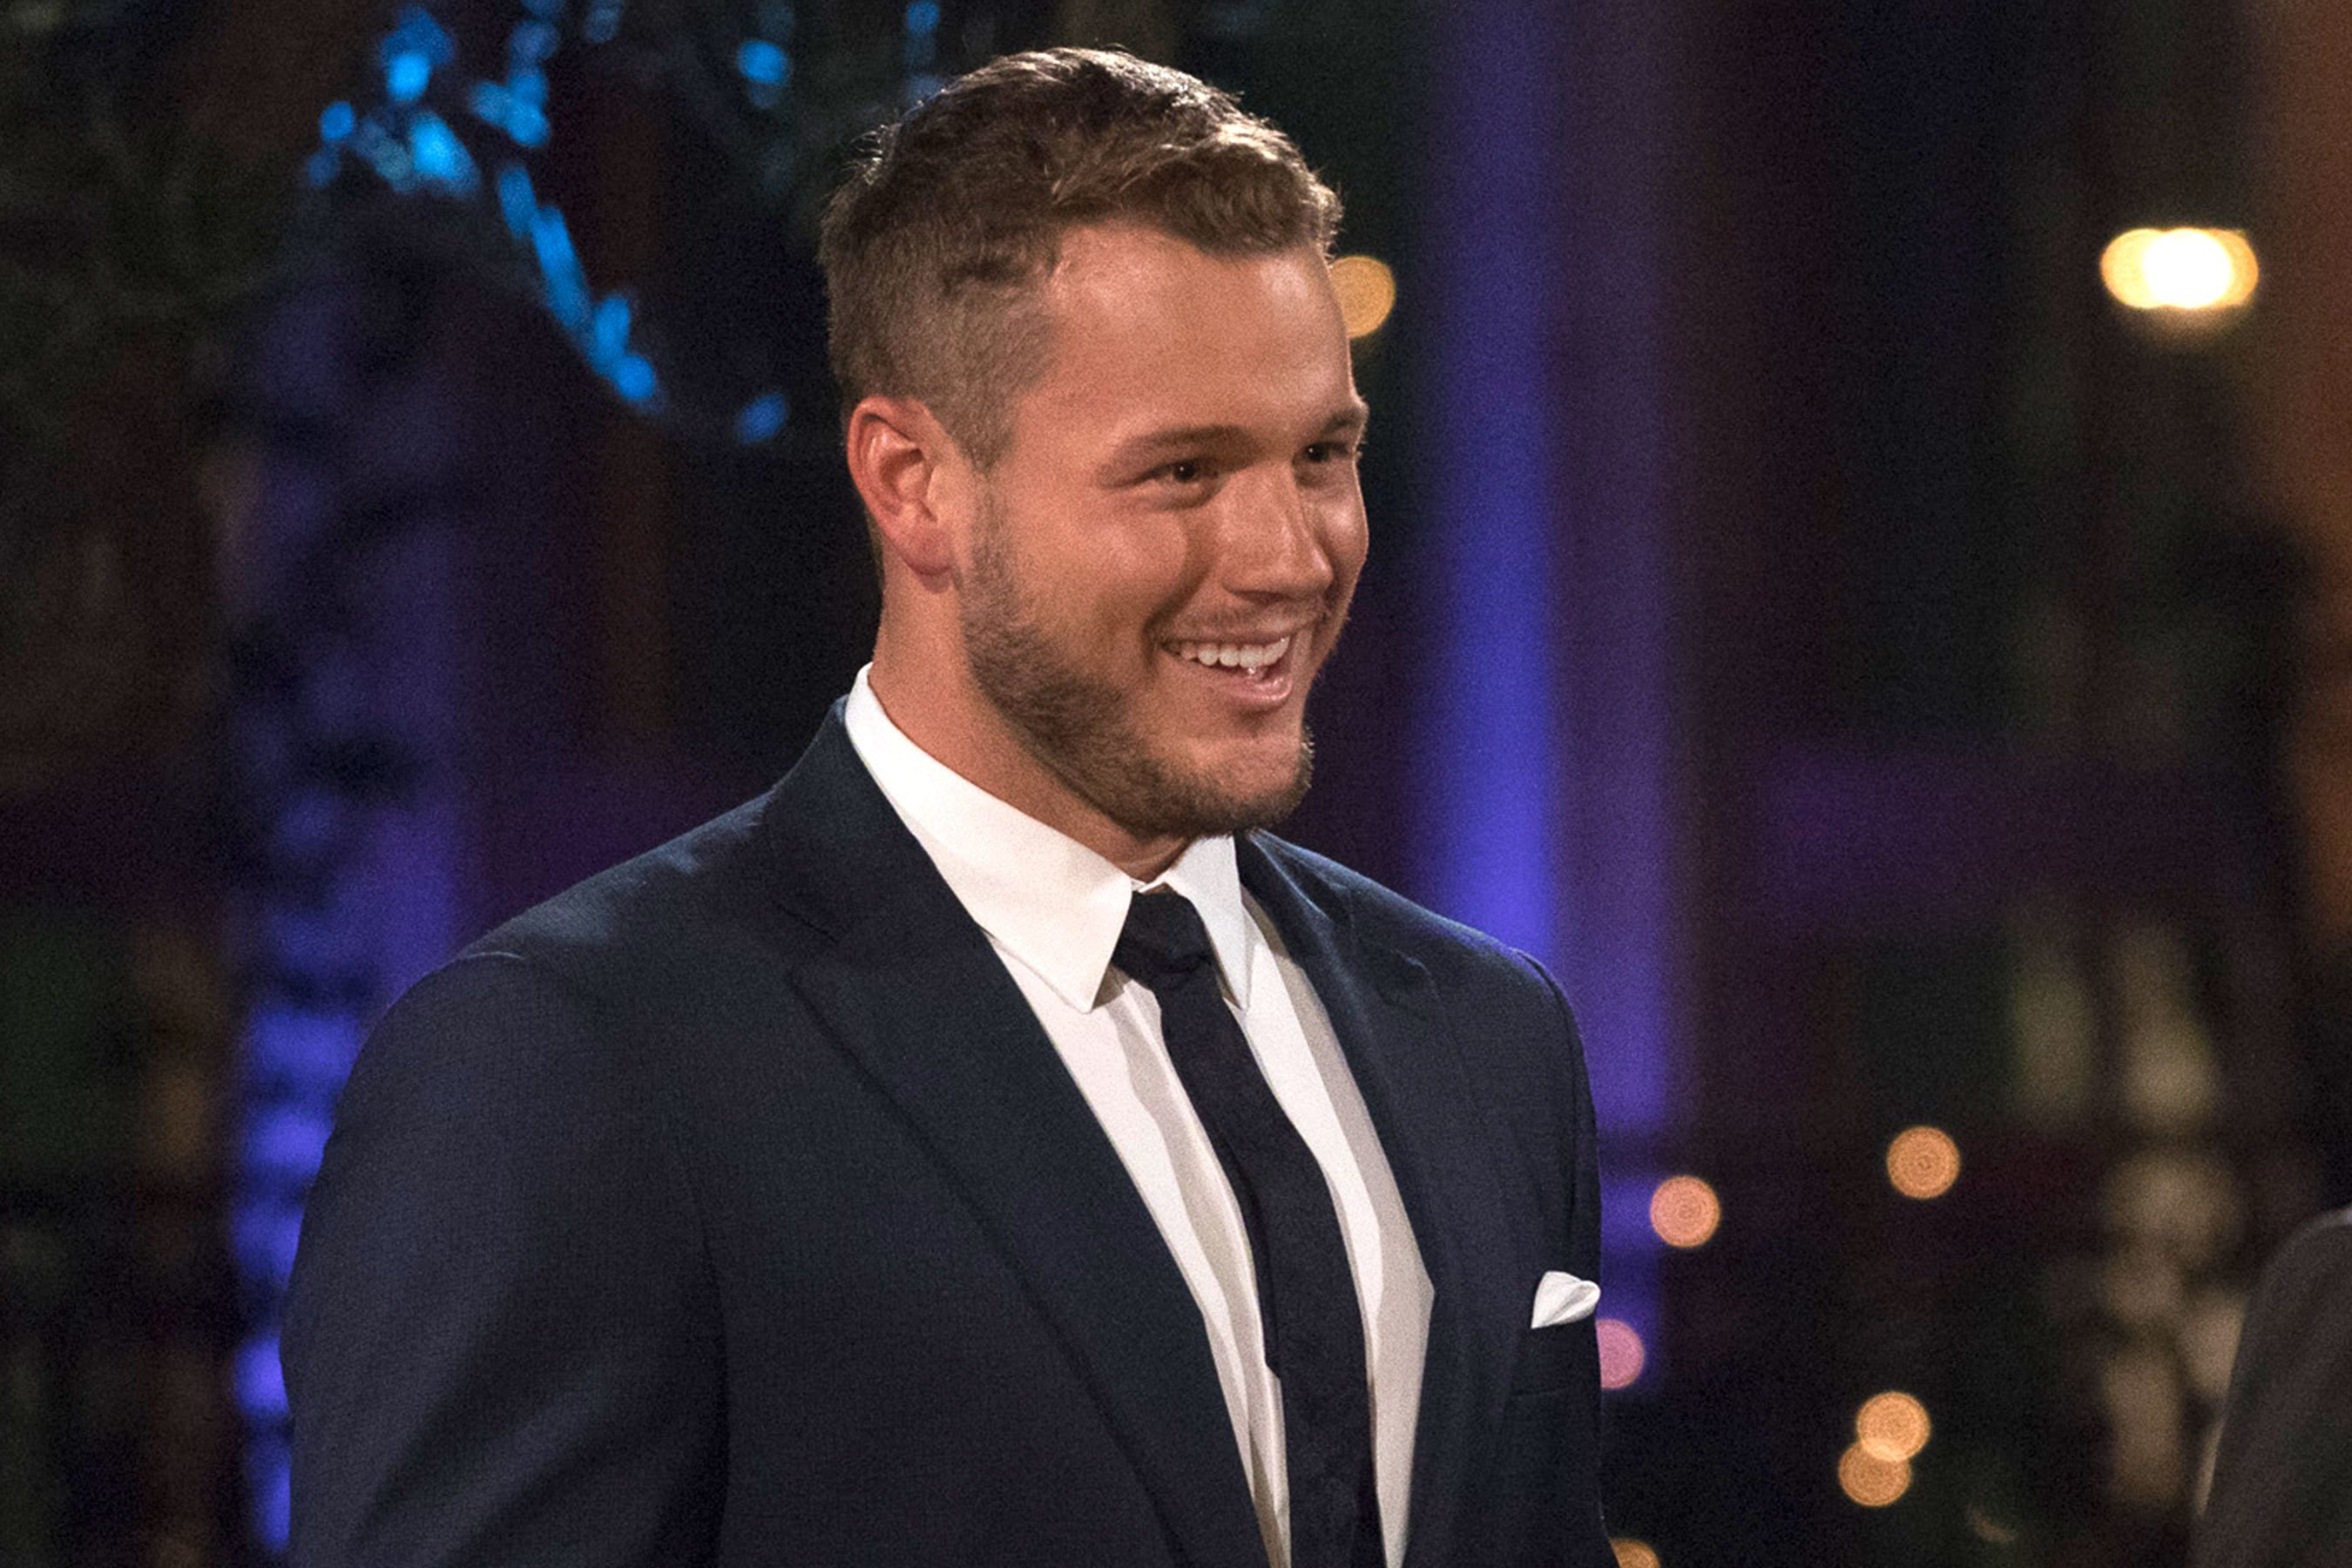 The Bachelor: Colton Underwood has no time for your criticism (or mine)